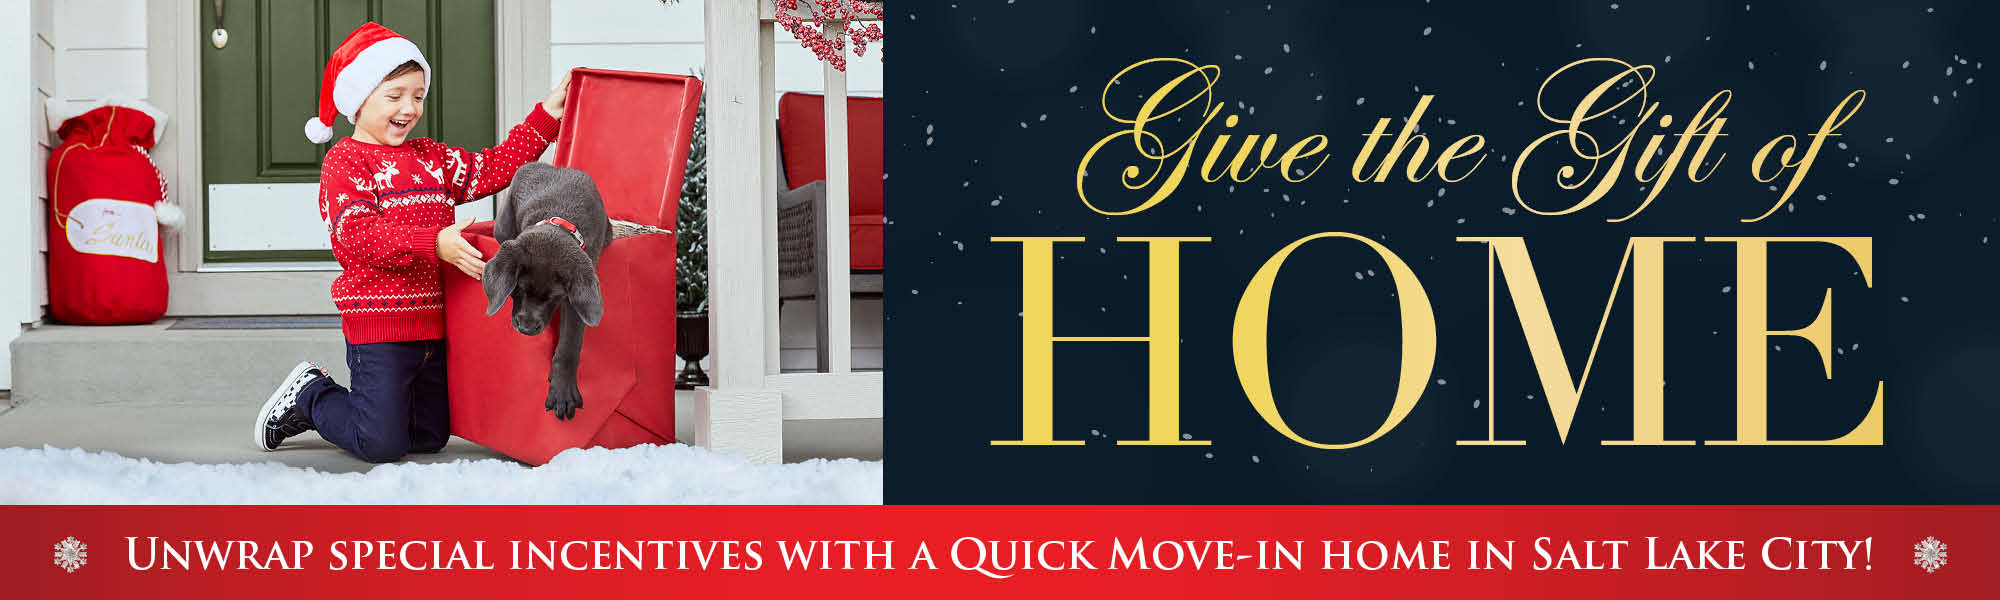 Give the Gift of Home in Salt Lake City